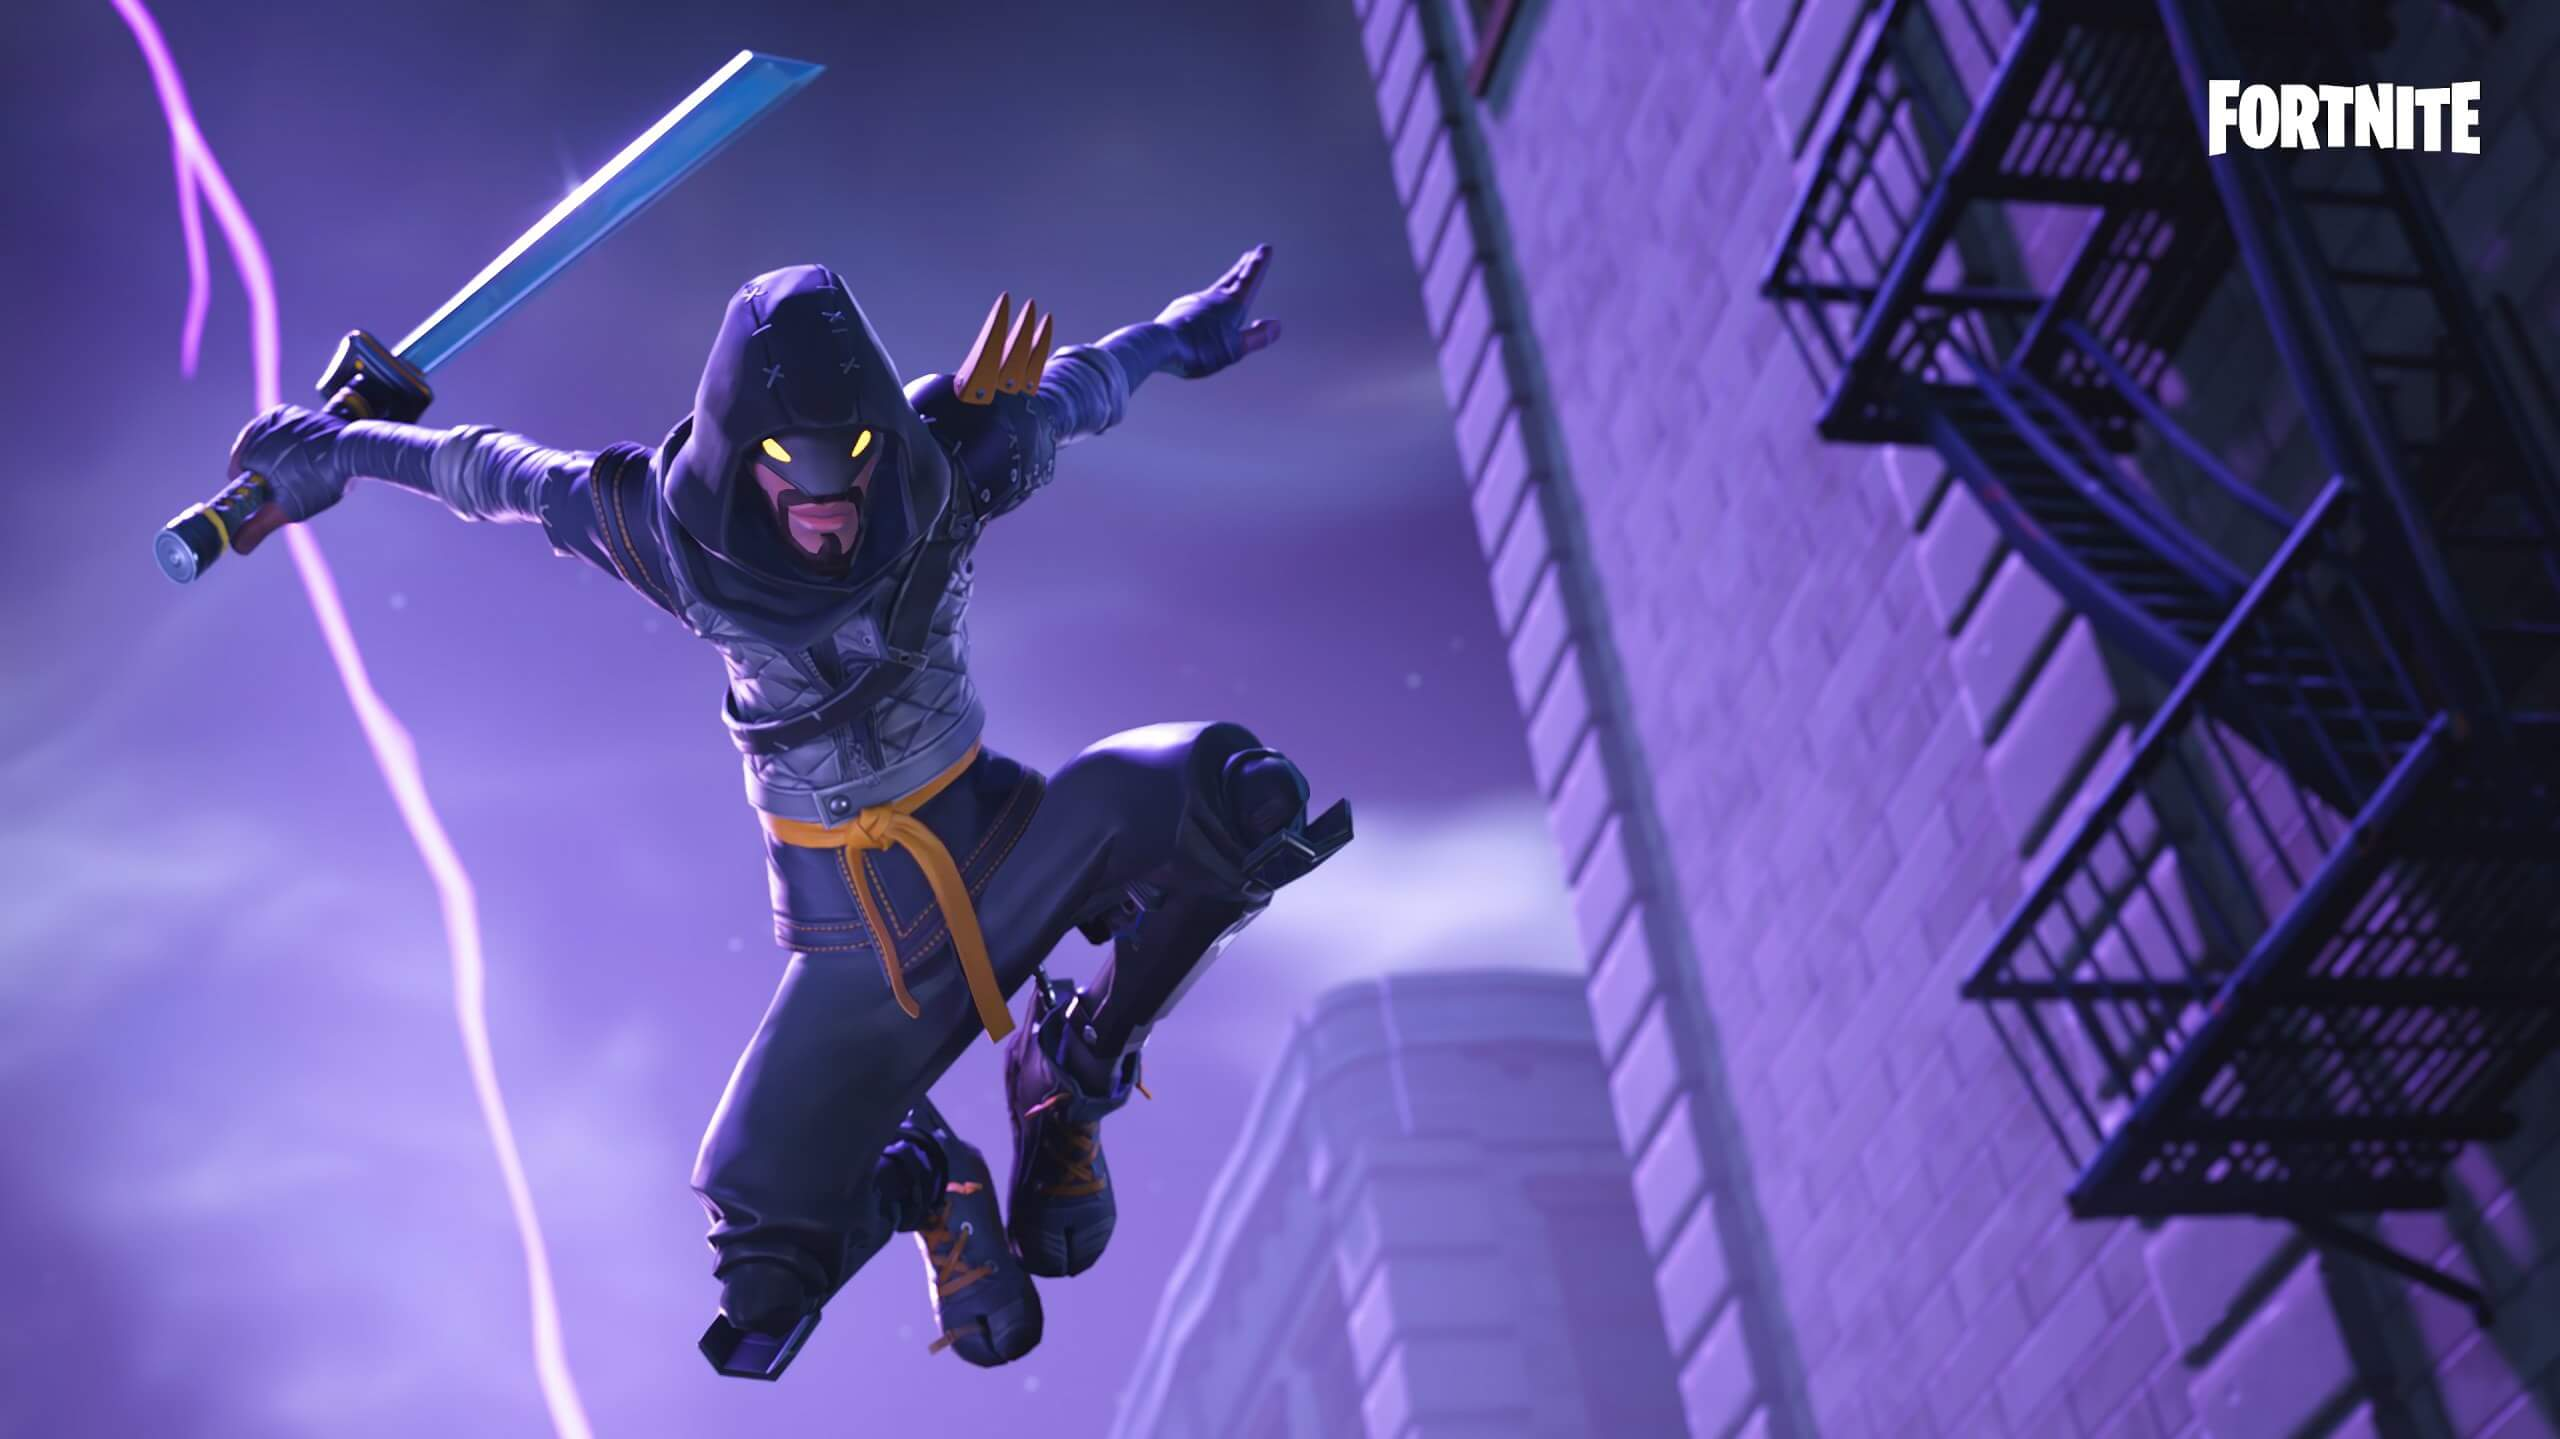 Criminals are laundering money through kids playing Fortnite